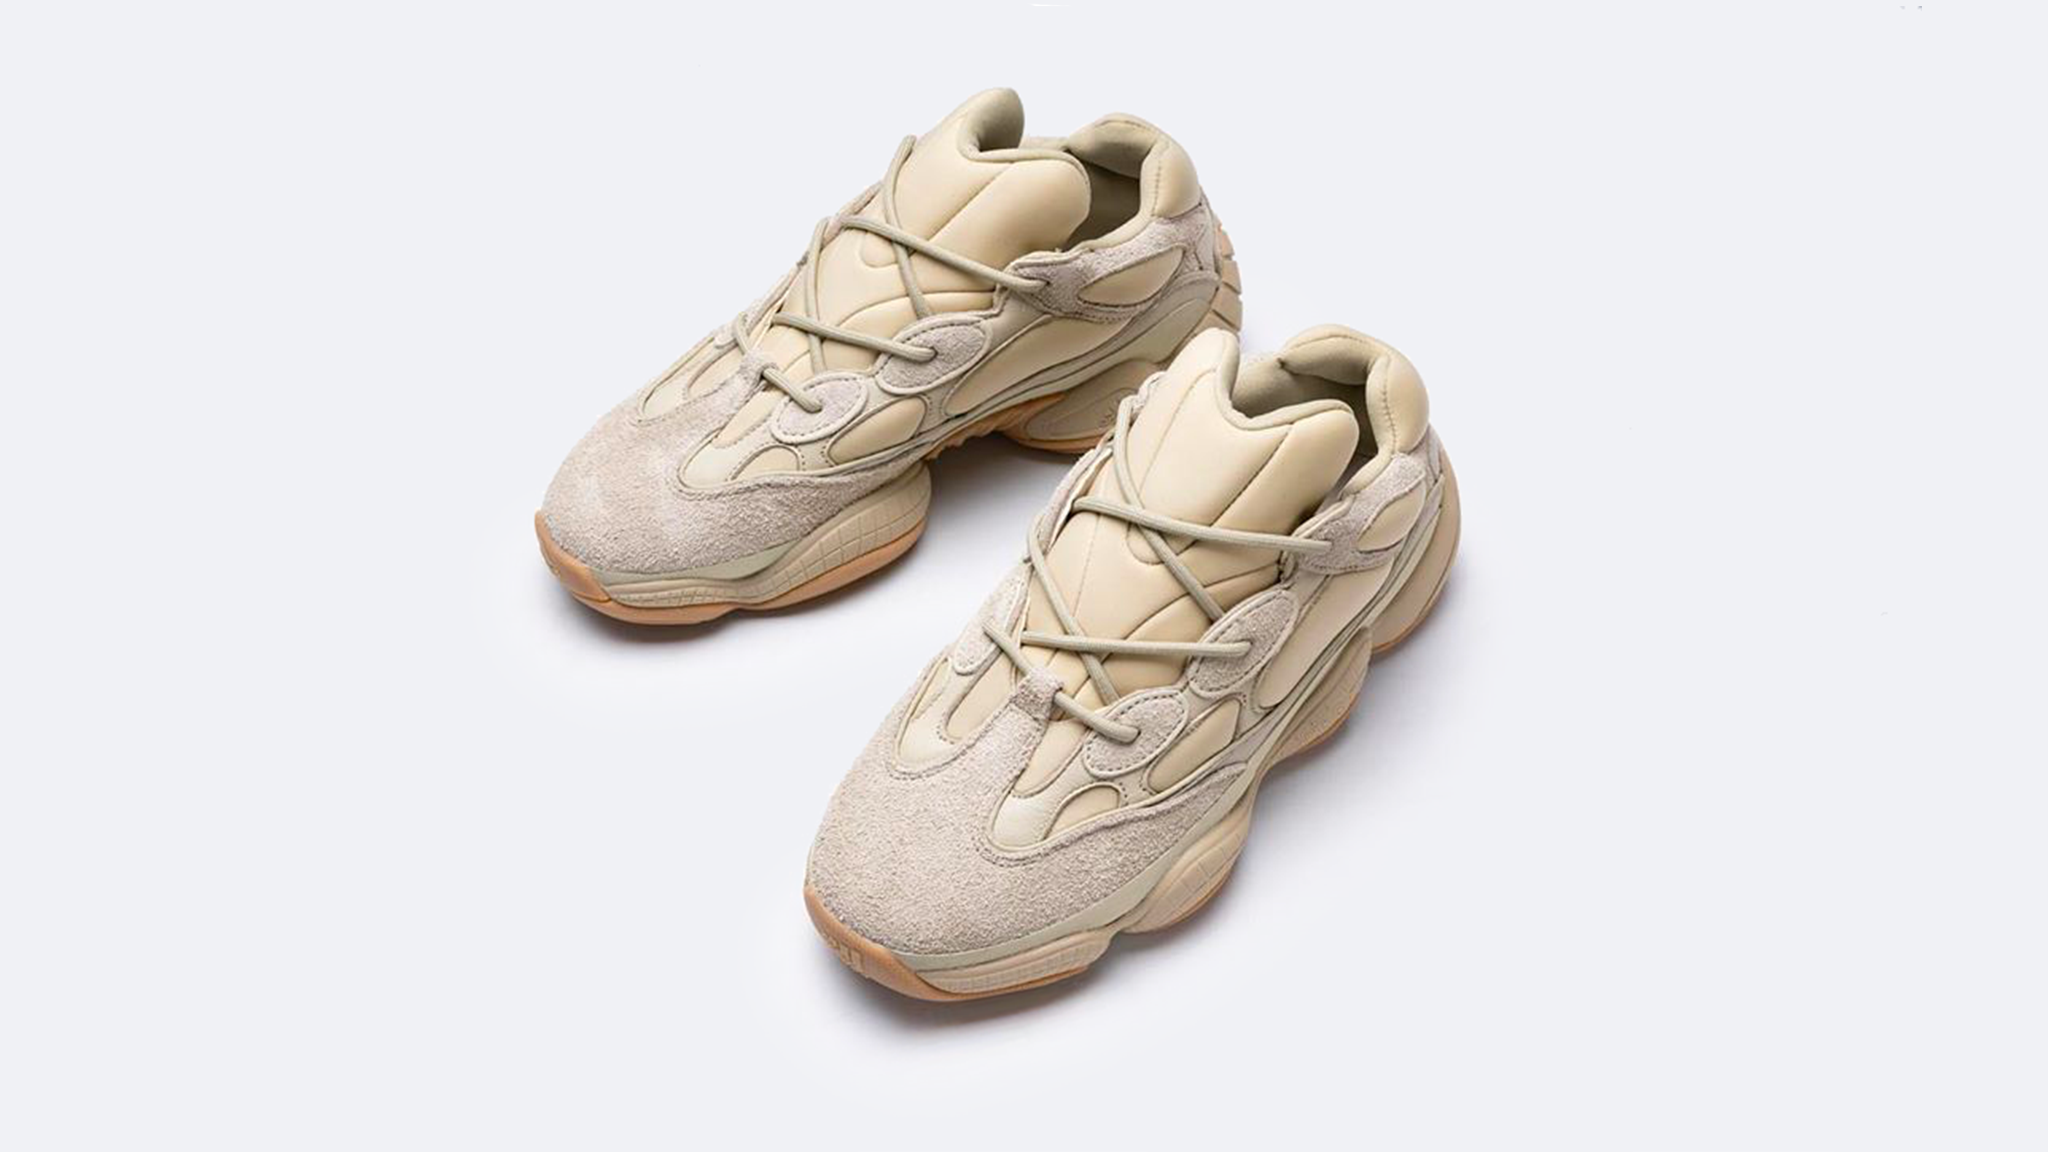 YEEZY 500 'Stone' Release, First Look